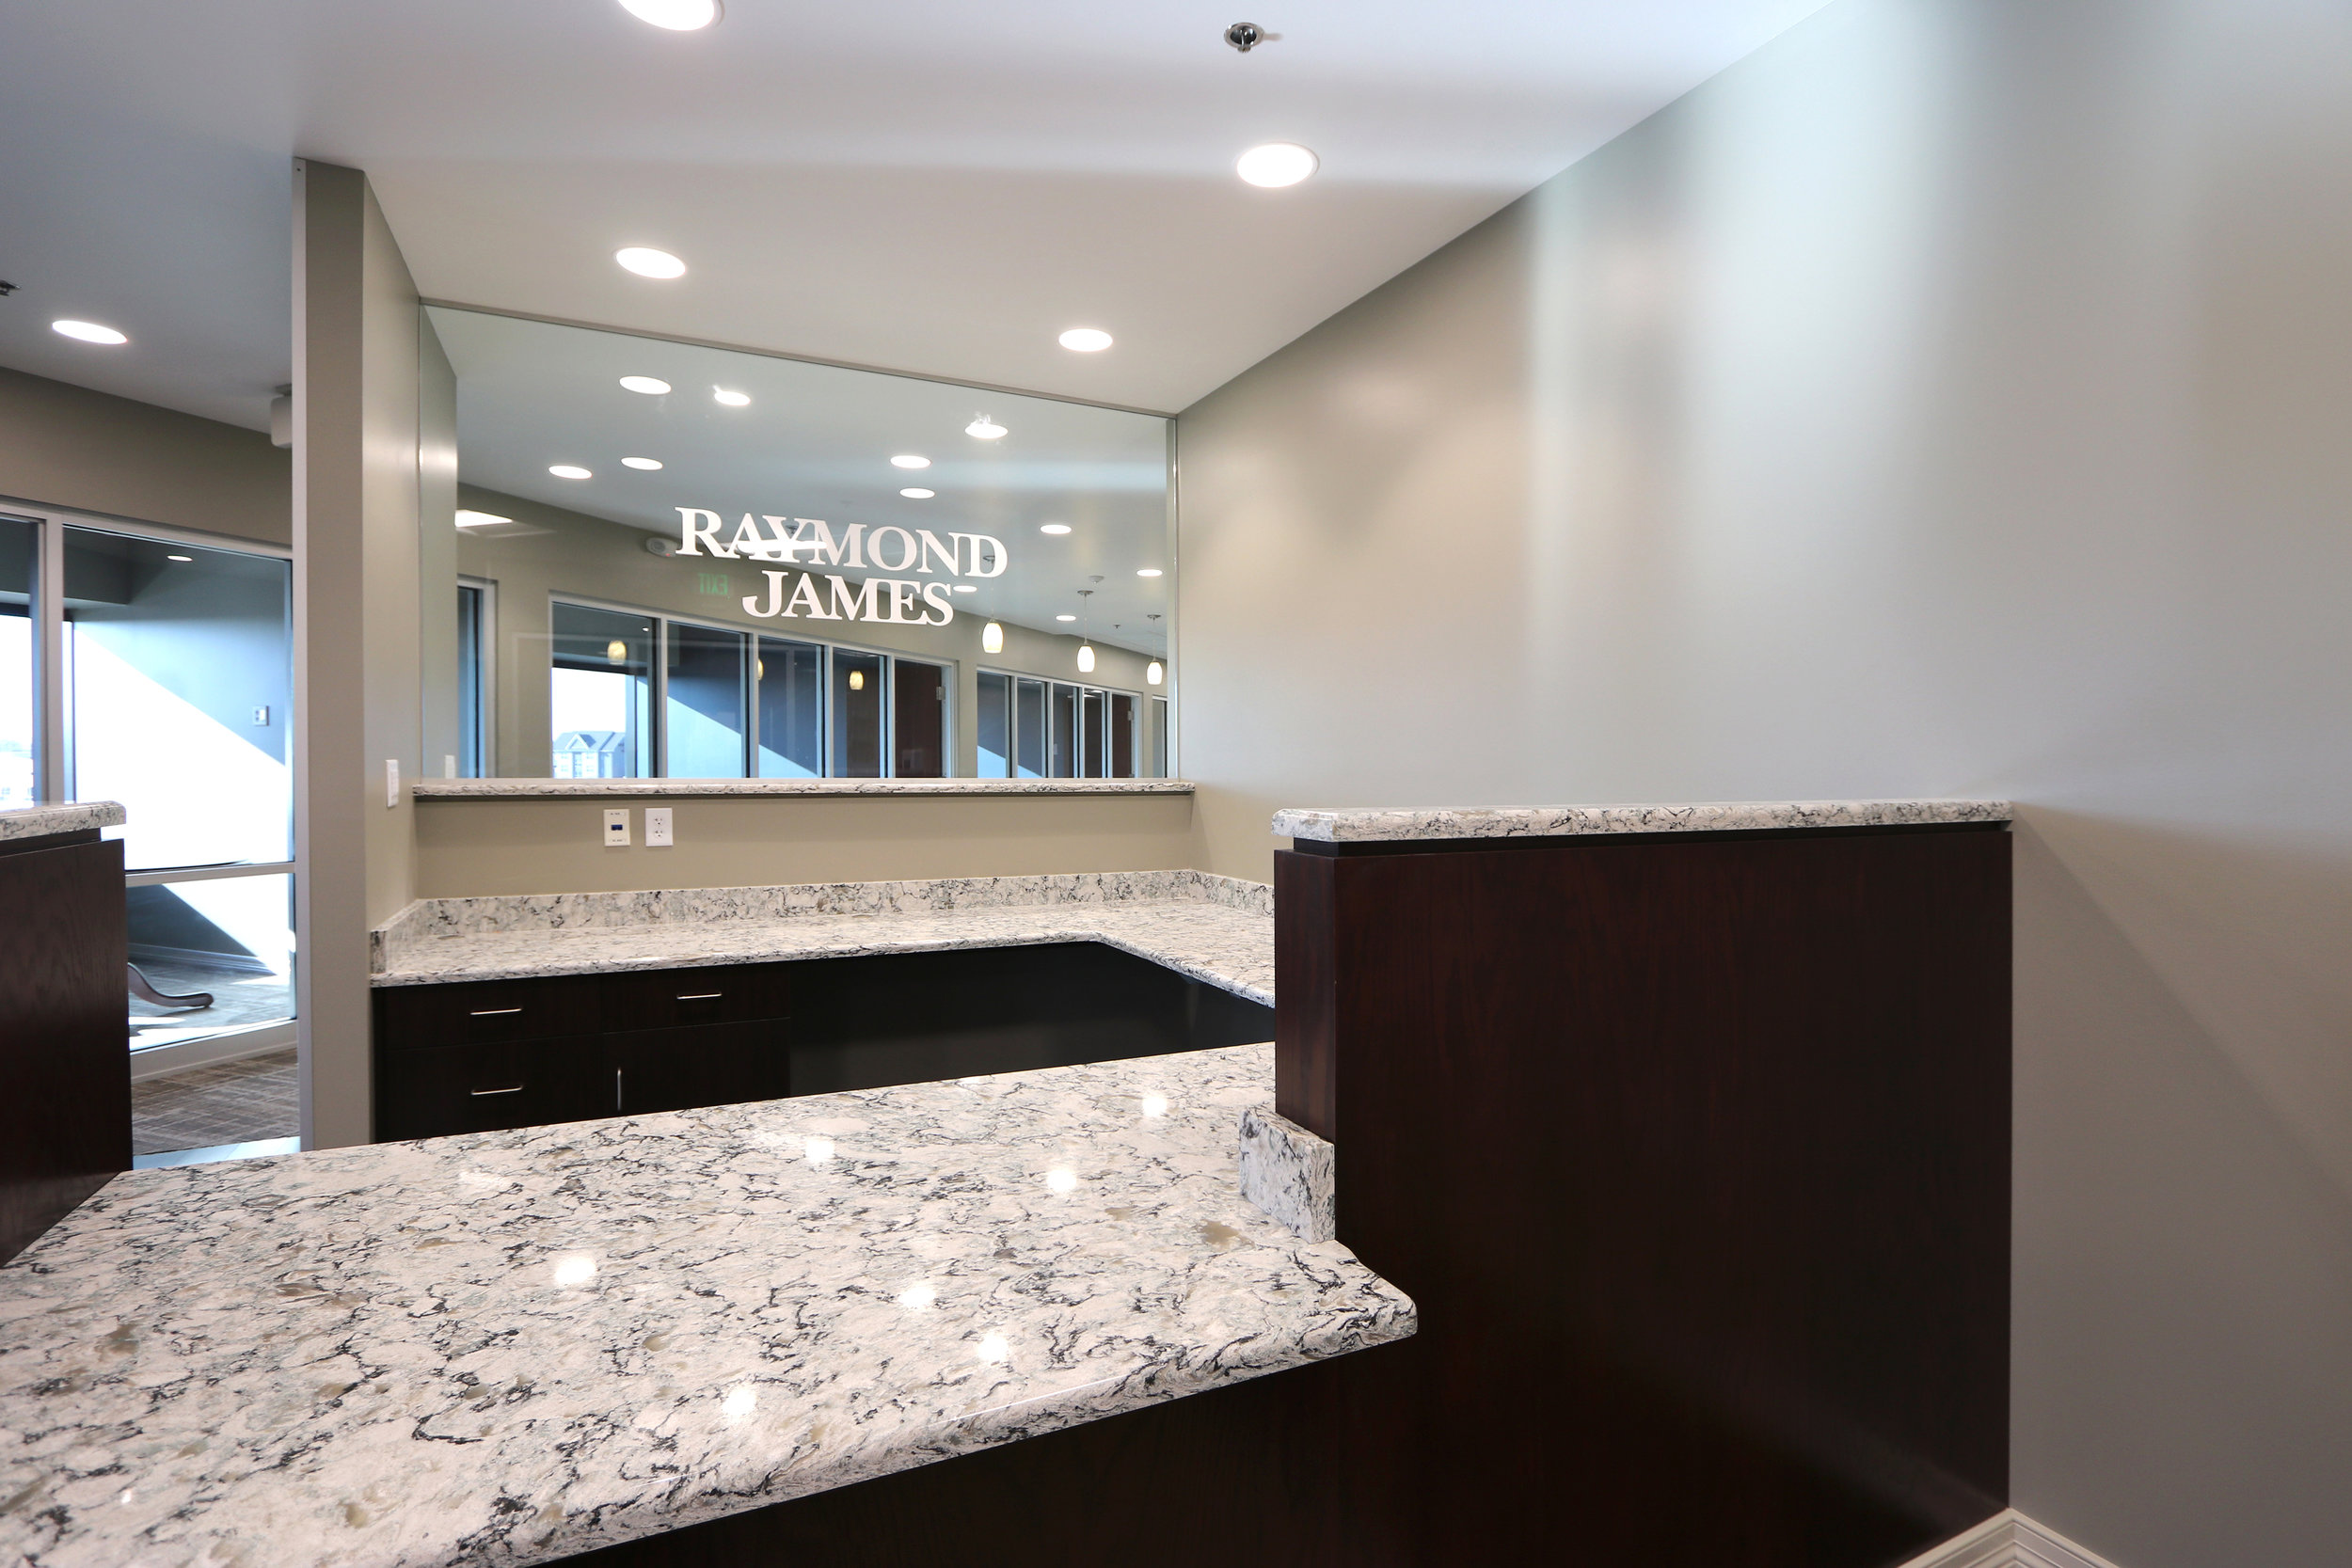 Raymond James Office Mishawaka, Indiana